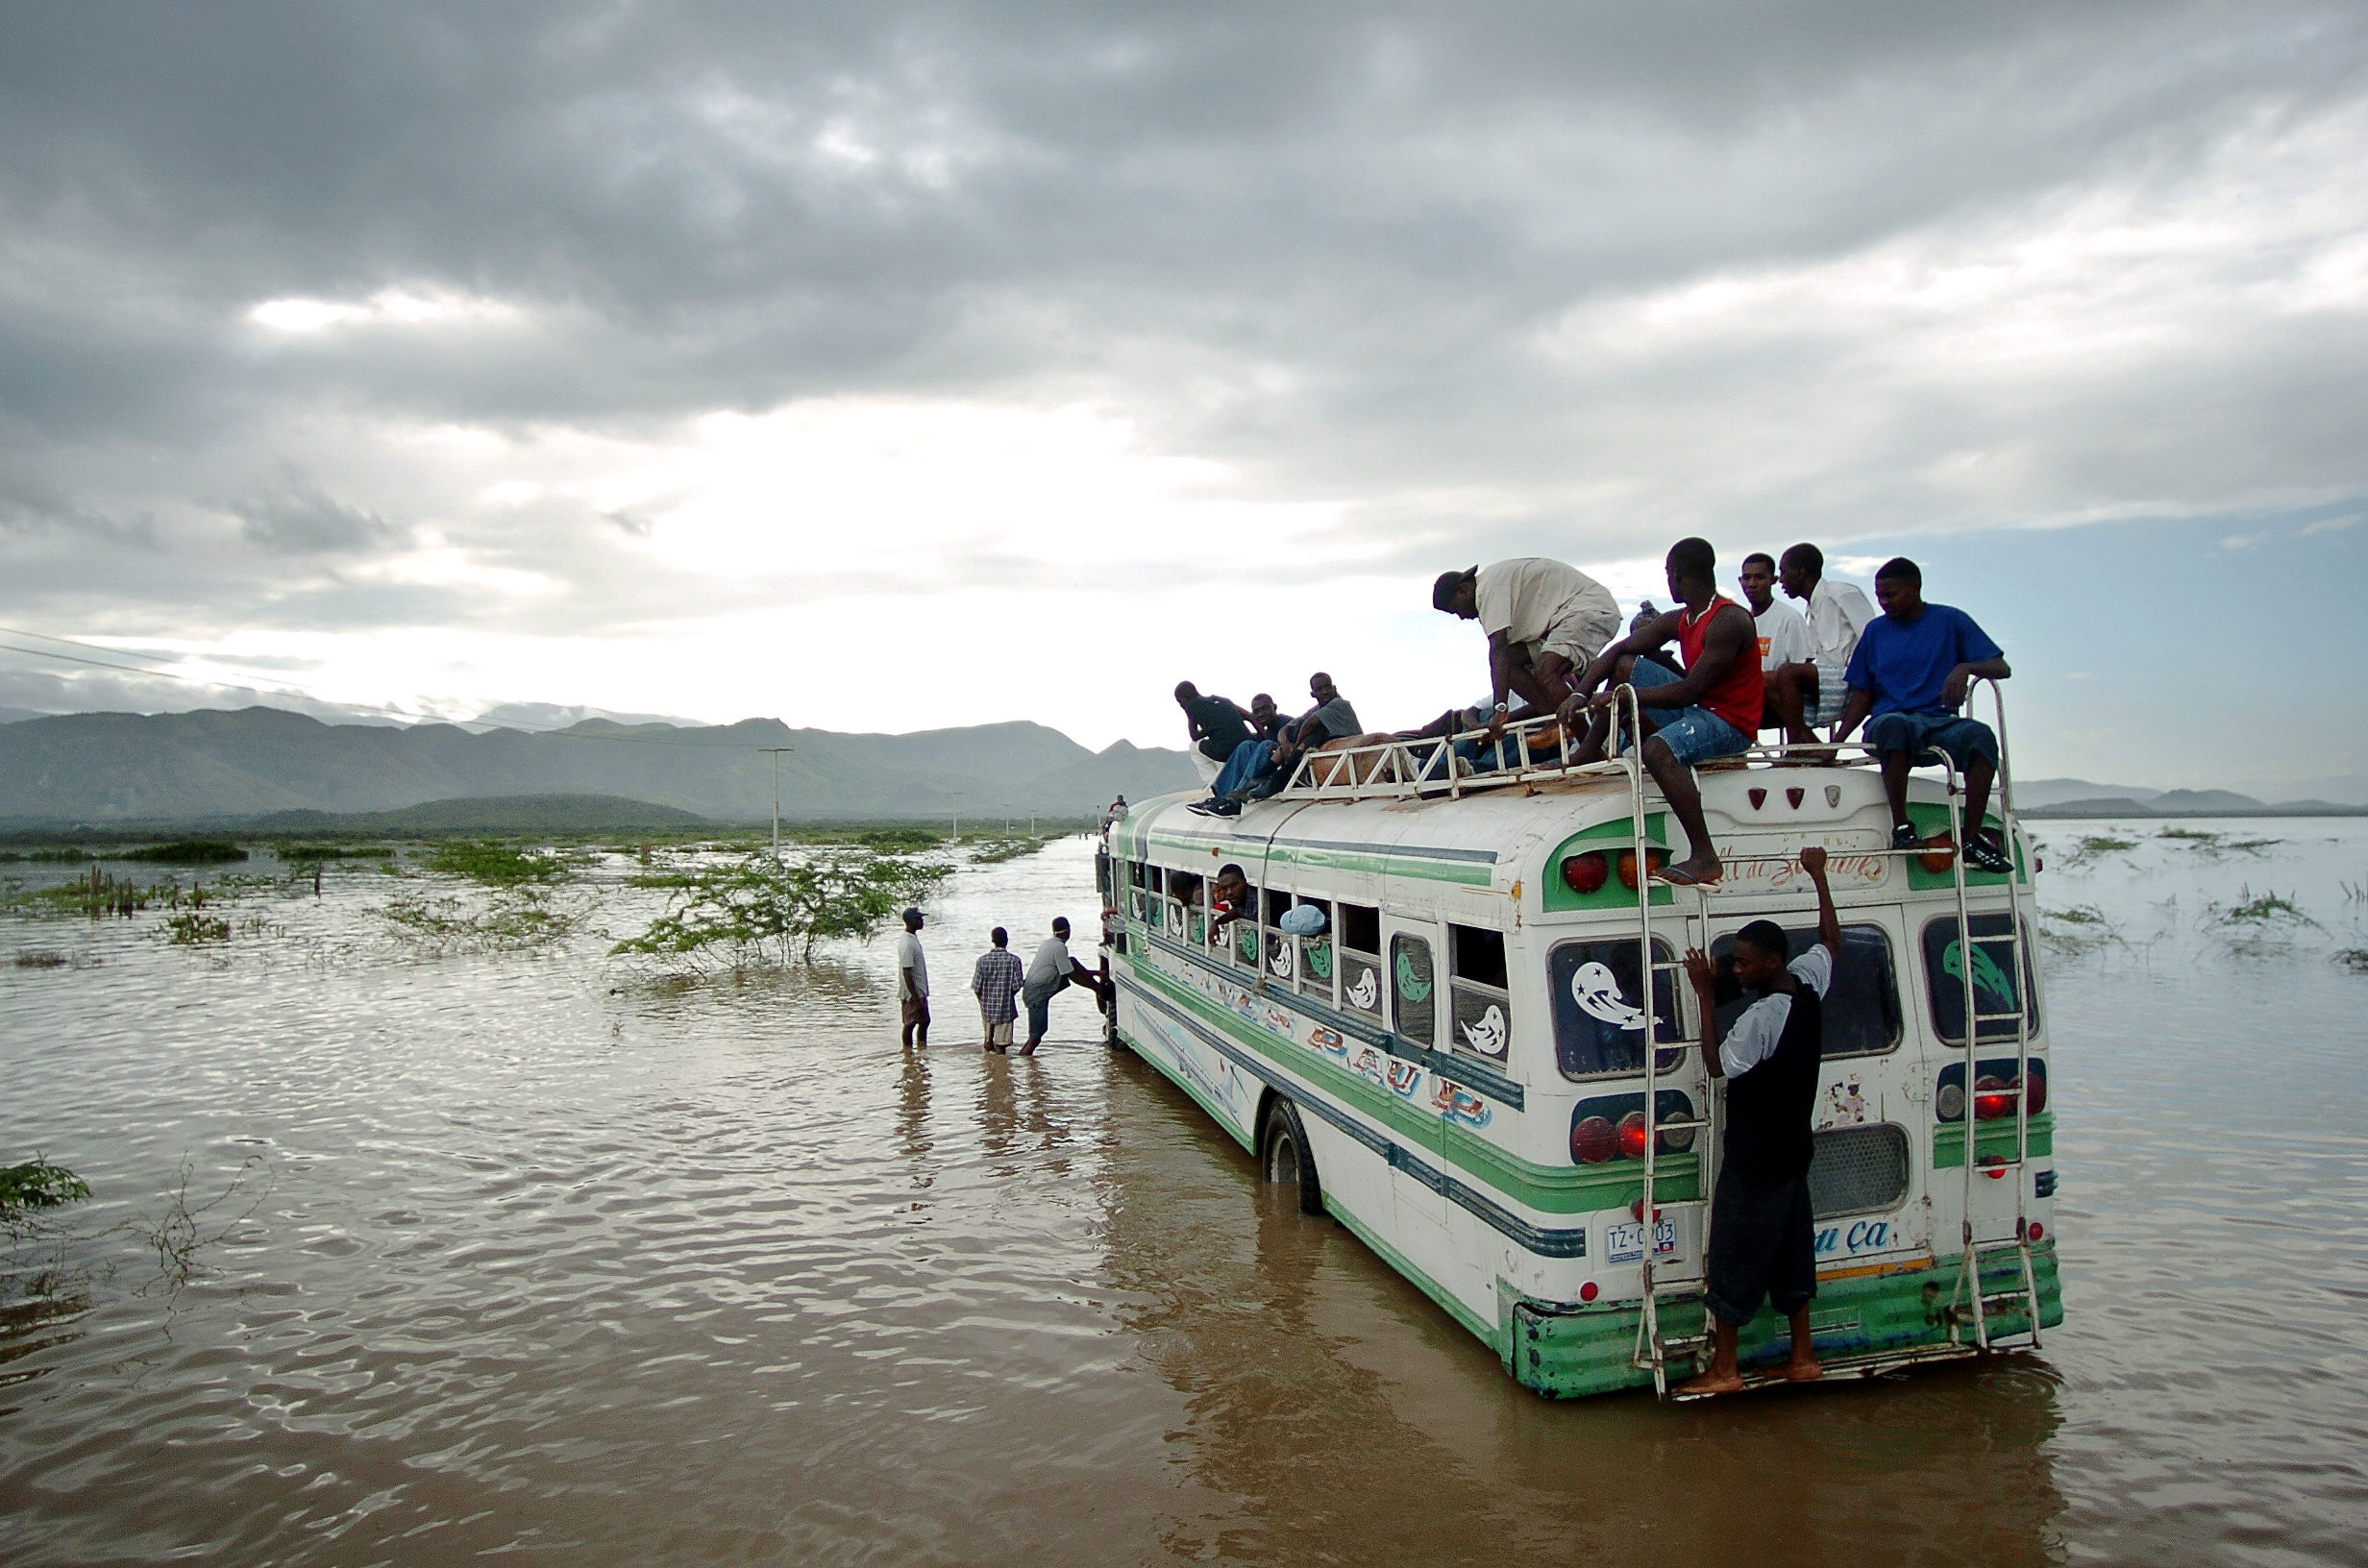 A bus filled with Haitian people after Hurricane Jeanne devastates the area